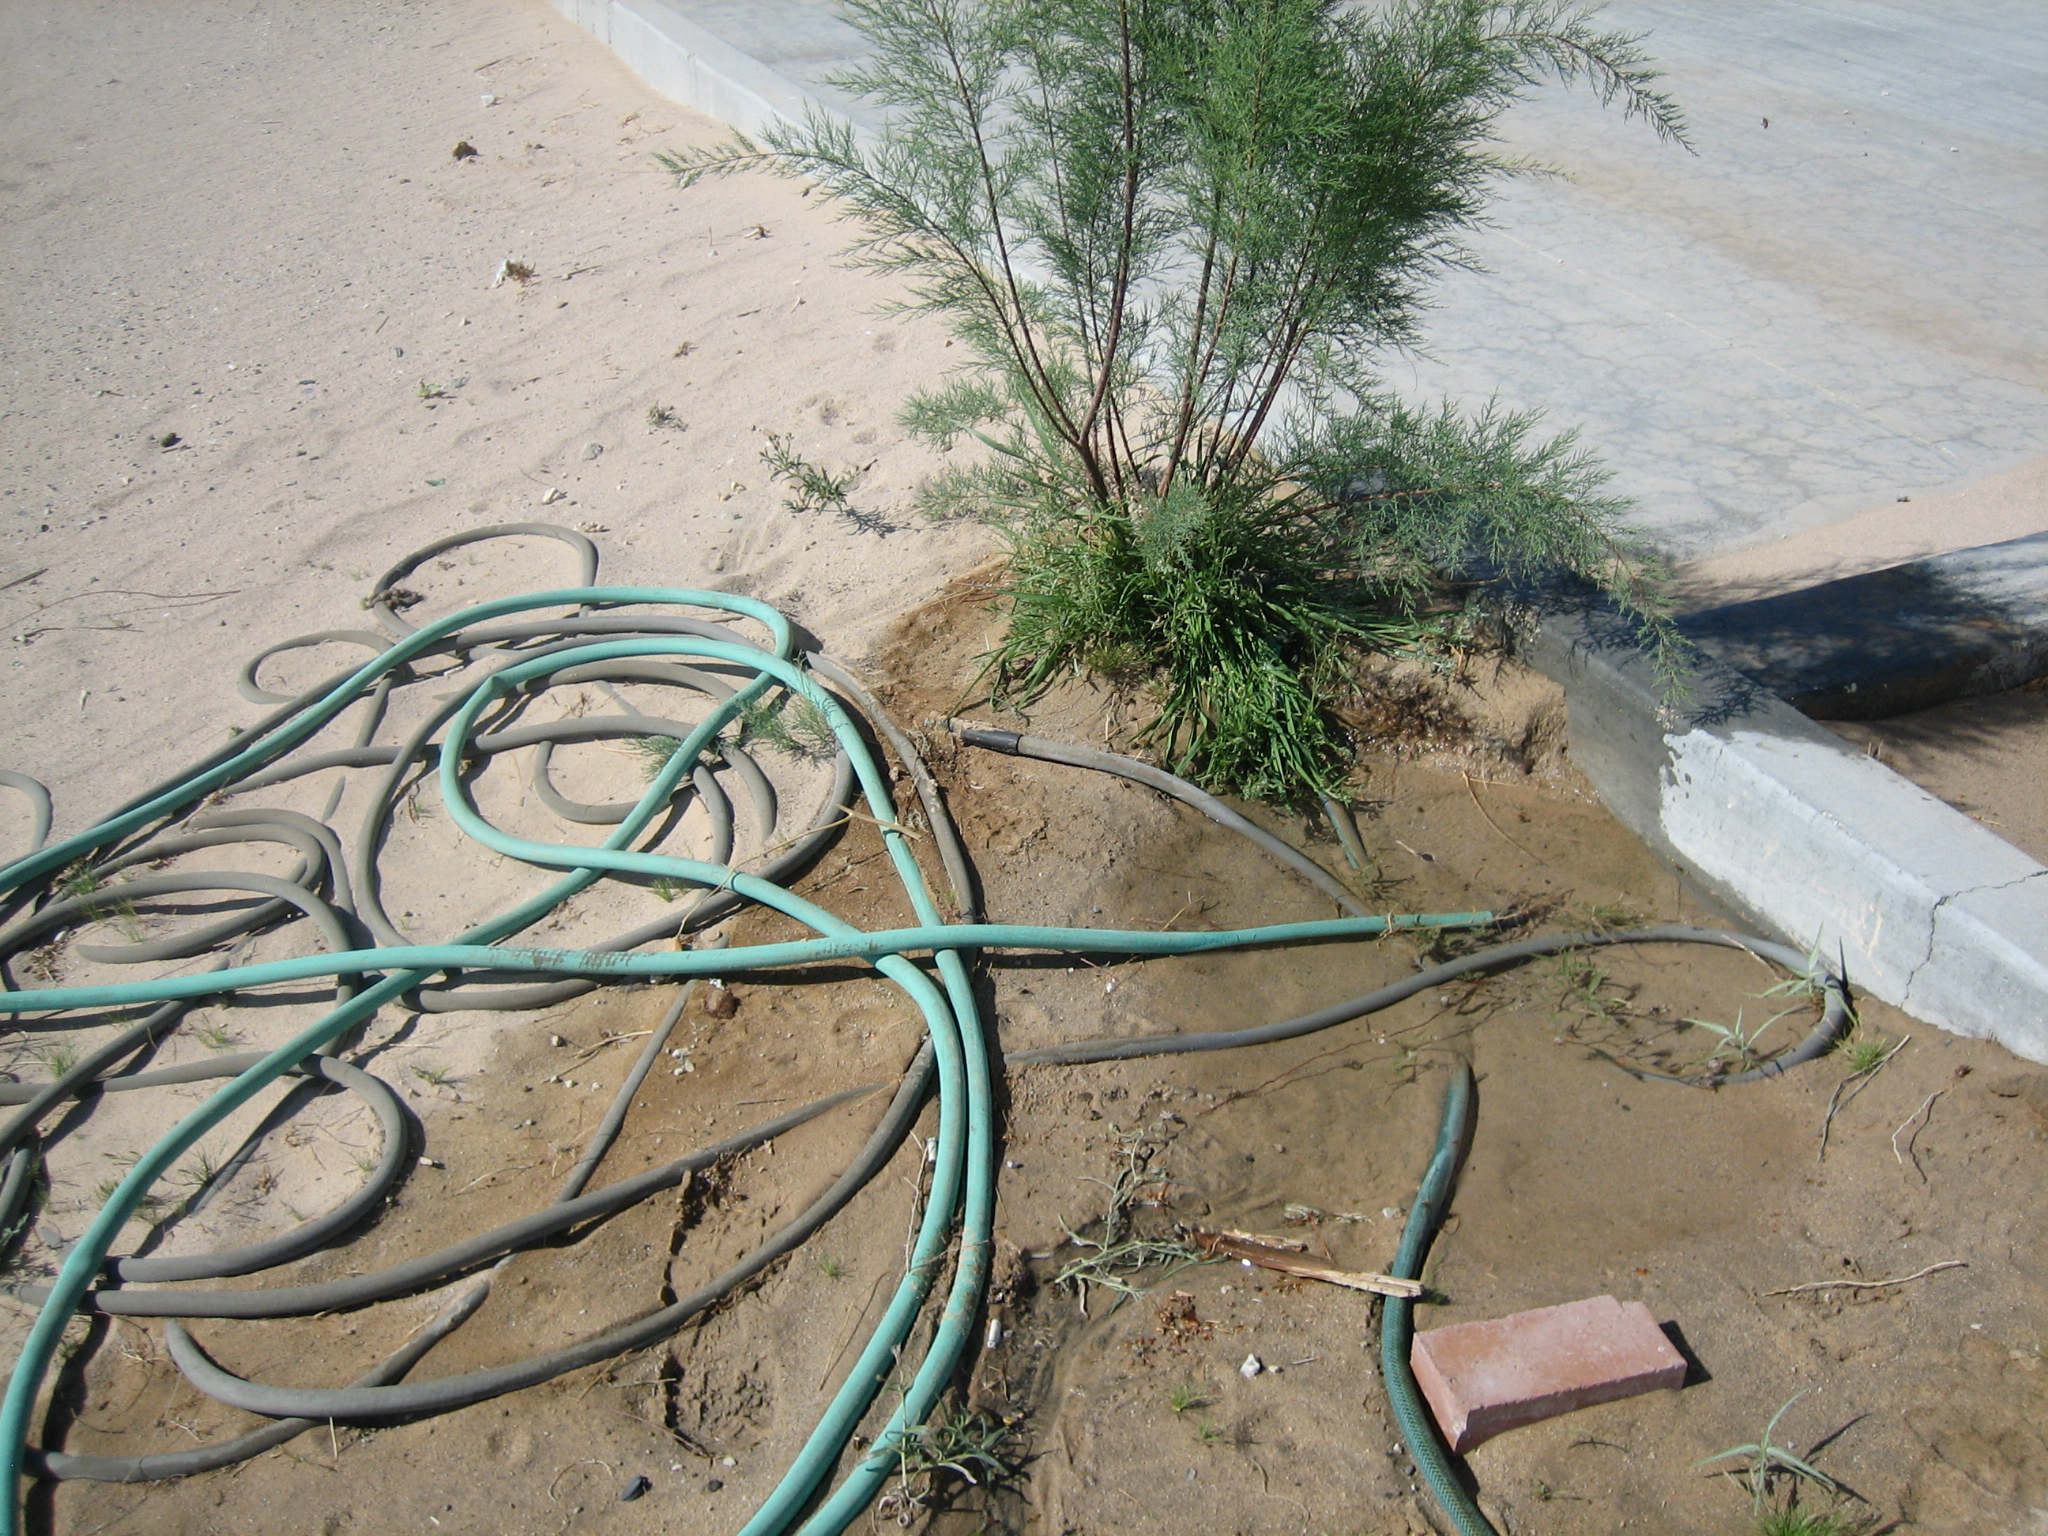 Hose Laying in Mud Next to Washrack without Protection